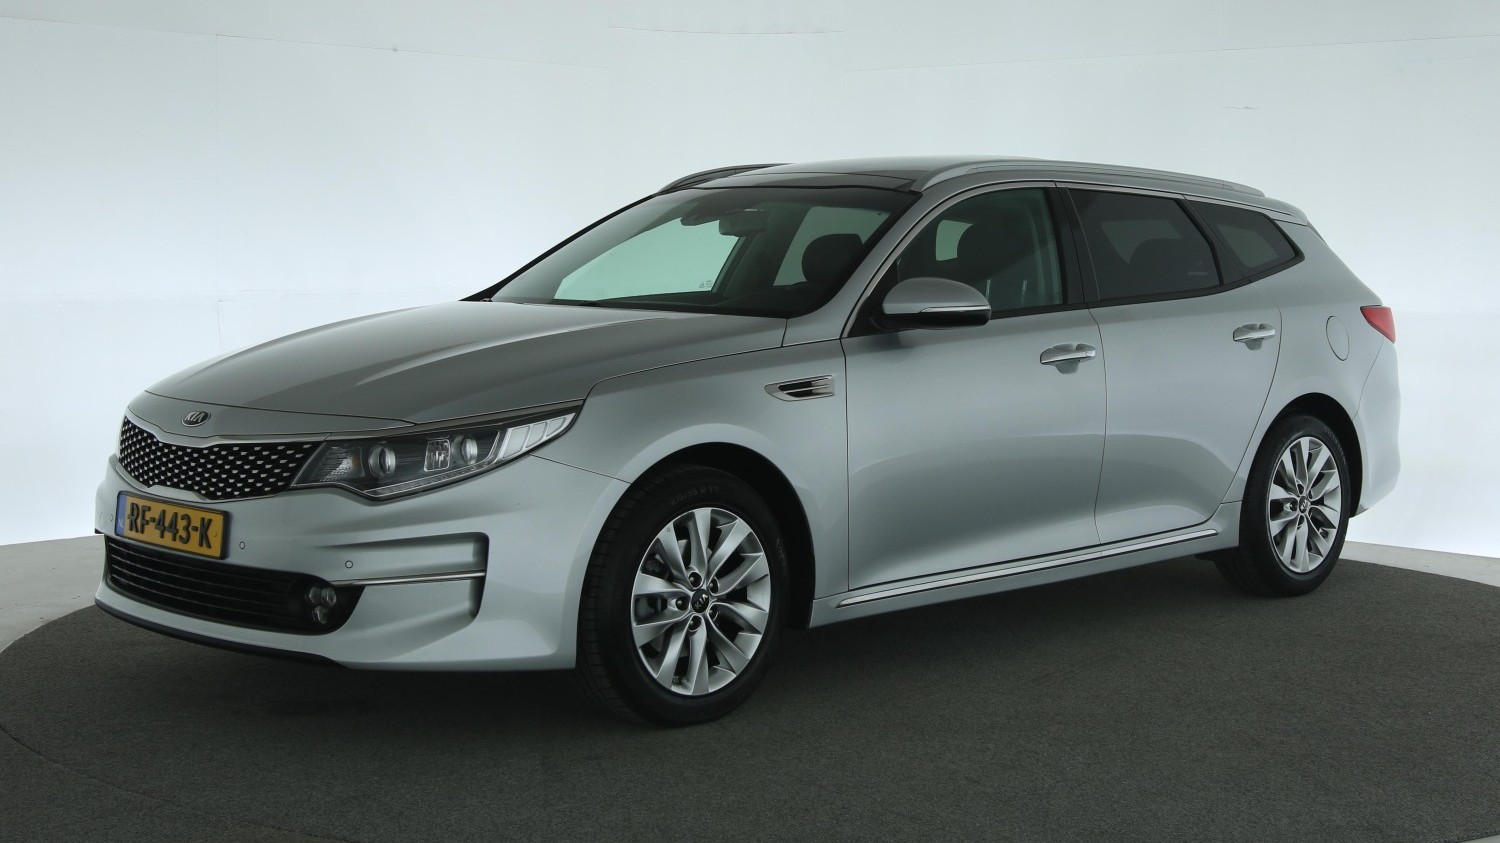 Kia Optima Station 2017 RF-443-K 1